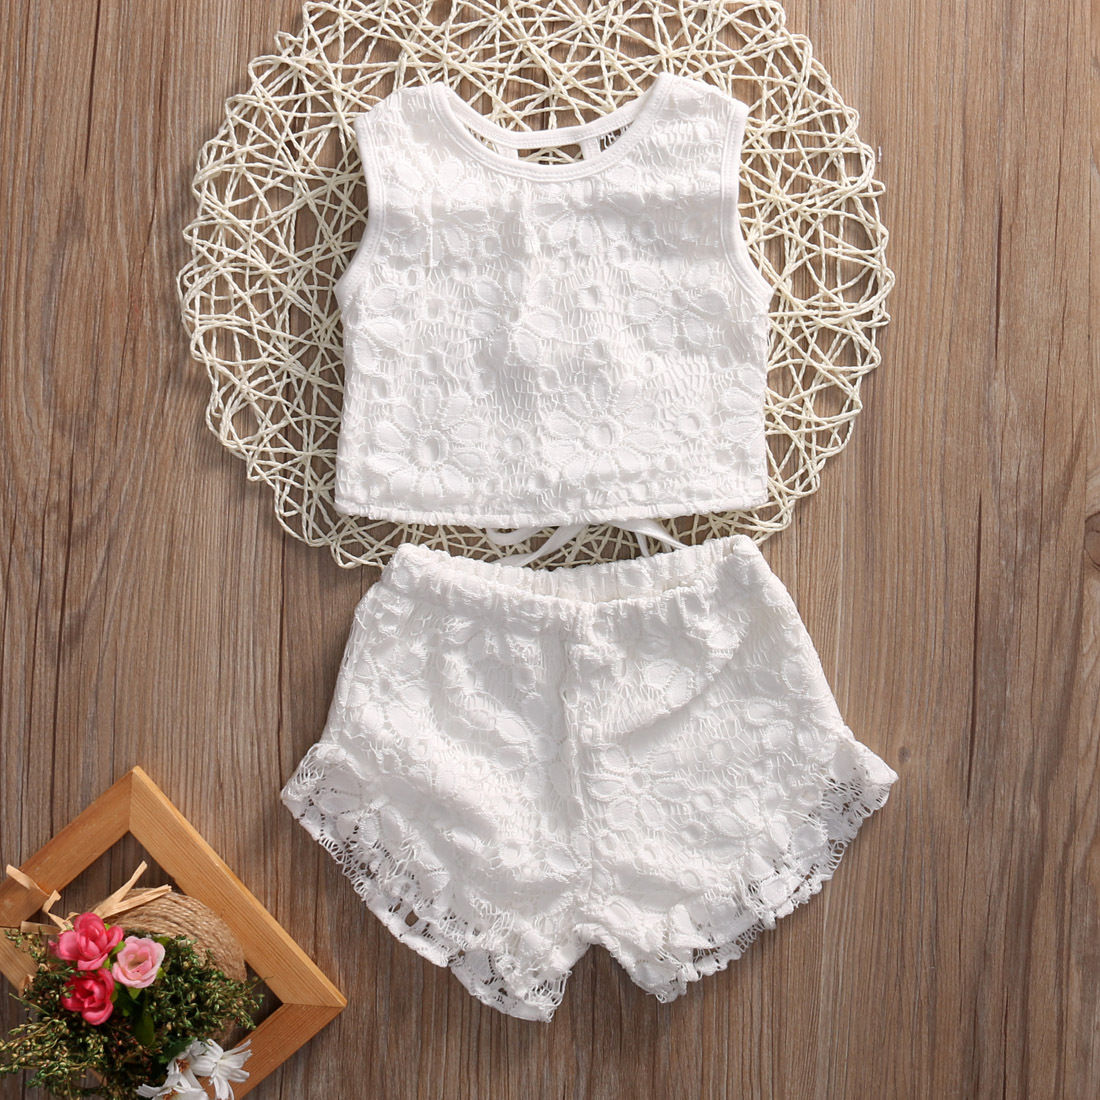 Toddler Baby Girls Clothes Kids Summer Floral Lace Sleeveless Tops Shirt Shorts Outfits Set girl Clothing baby kids baseball season clothes baby girls love baseball clothing girls summer boutique baseball outfits with accessories